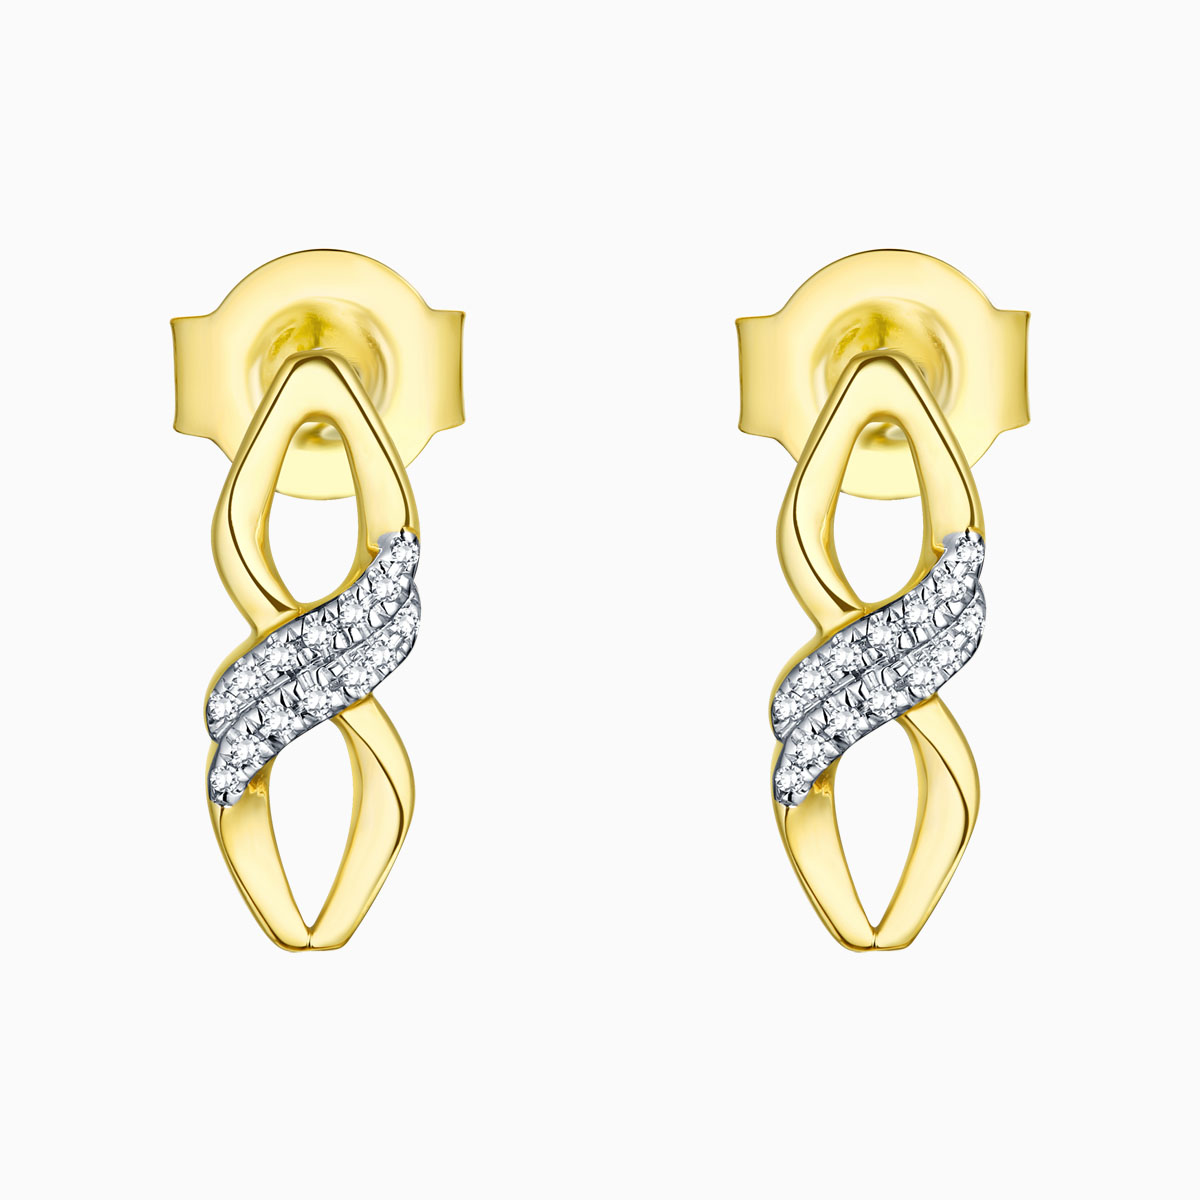 E13559WHT- 14K Yellow Gold Diamond Earrings, 0.04 TCW